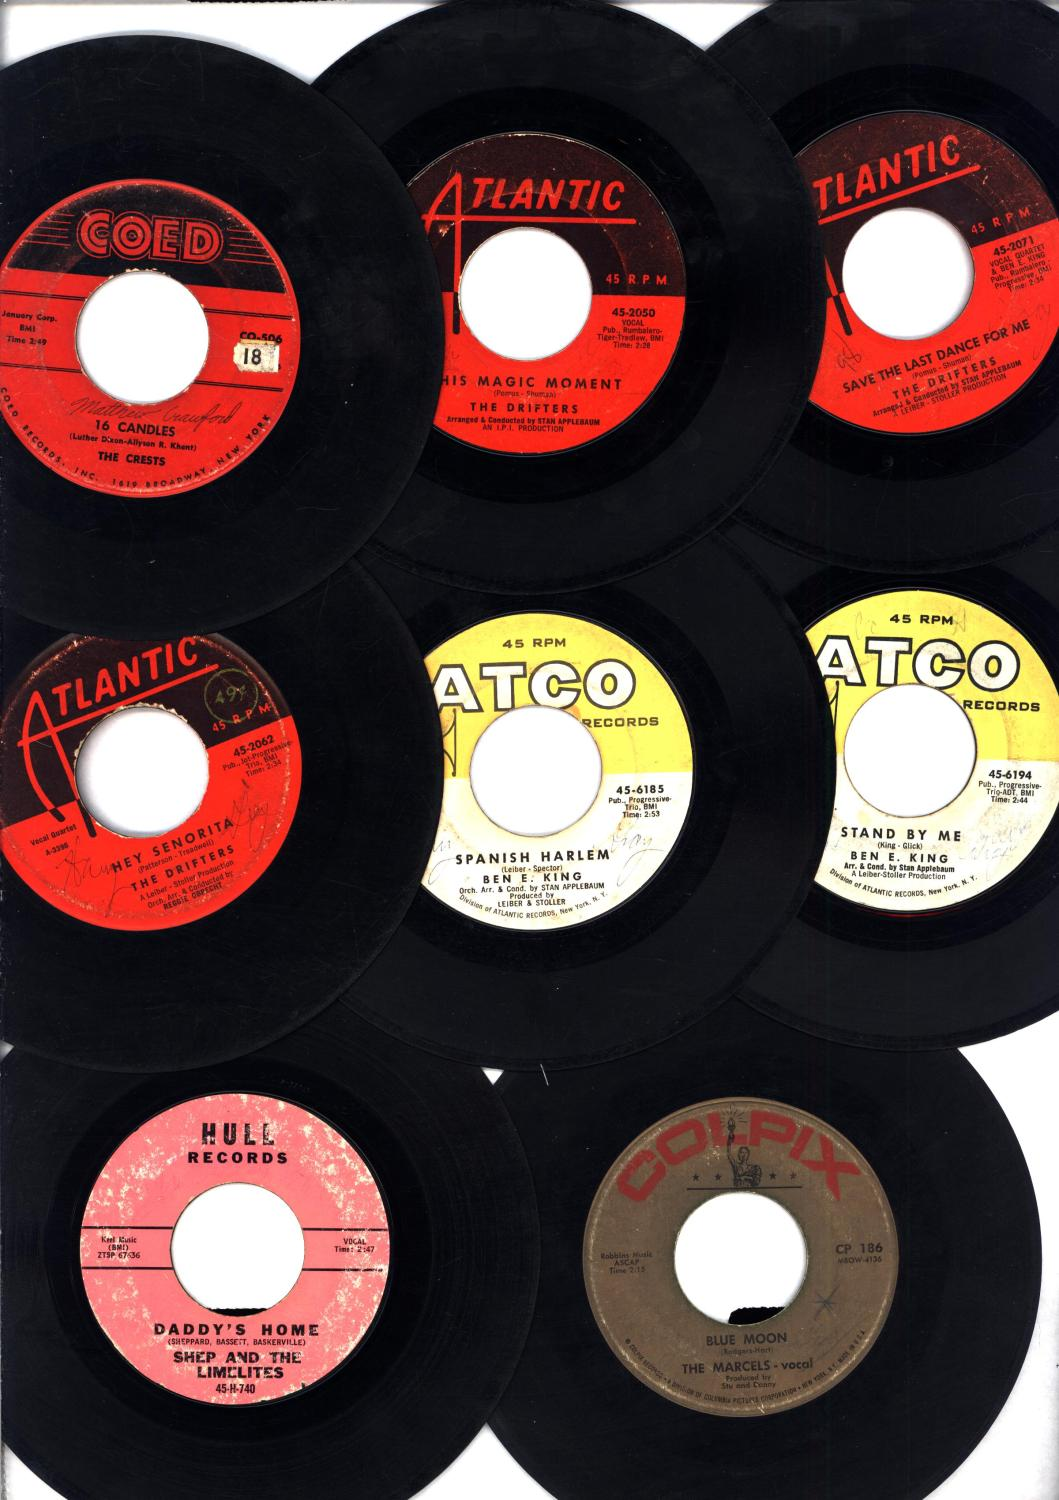 The Joy of 45 Collecting: Why Collect 45 RPM Records?